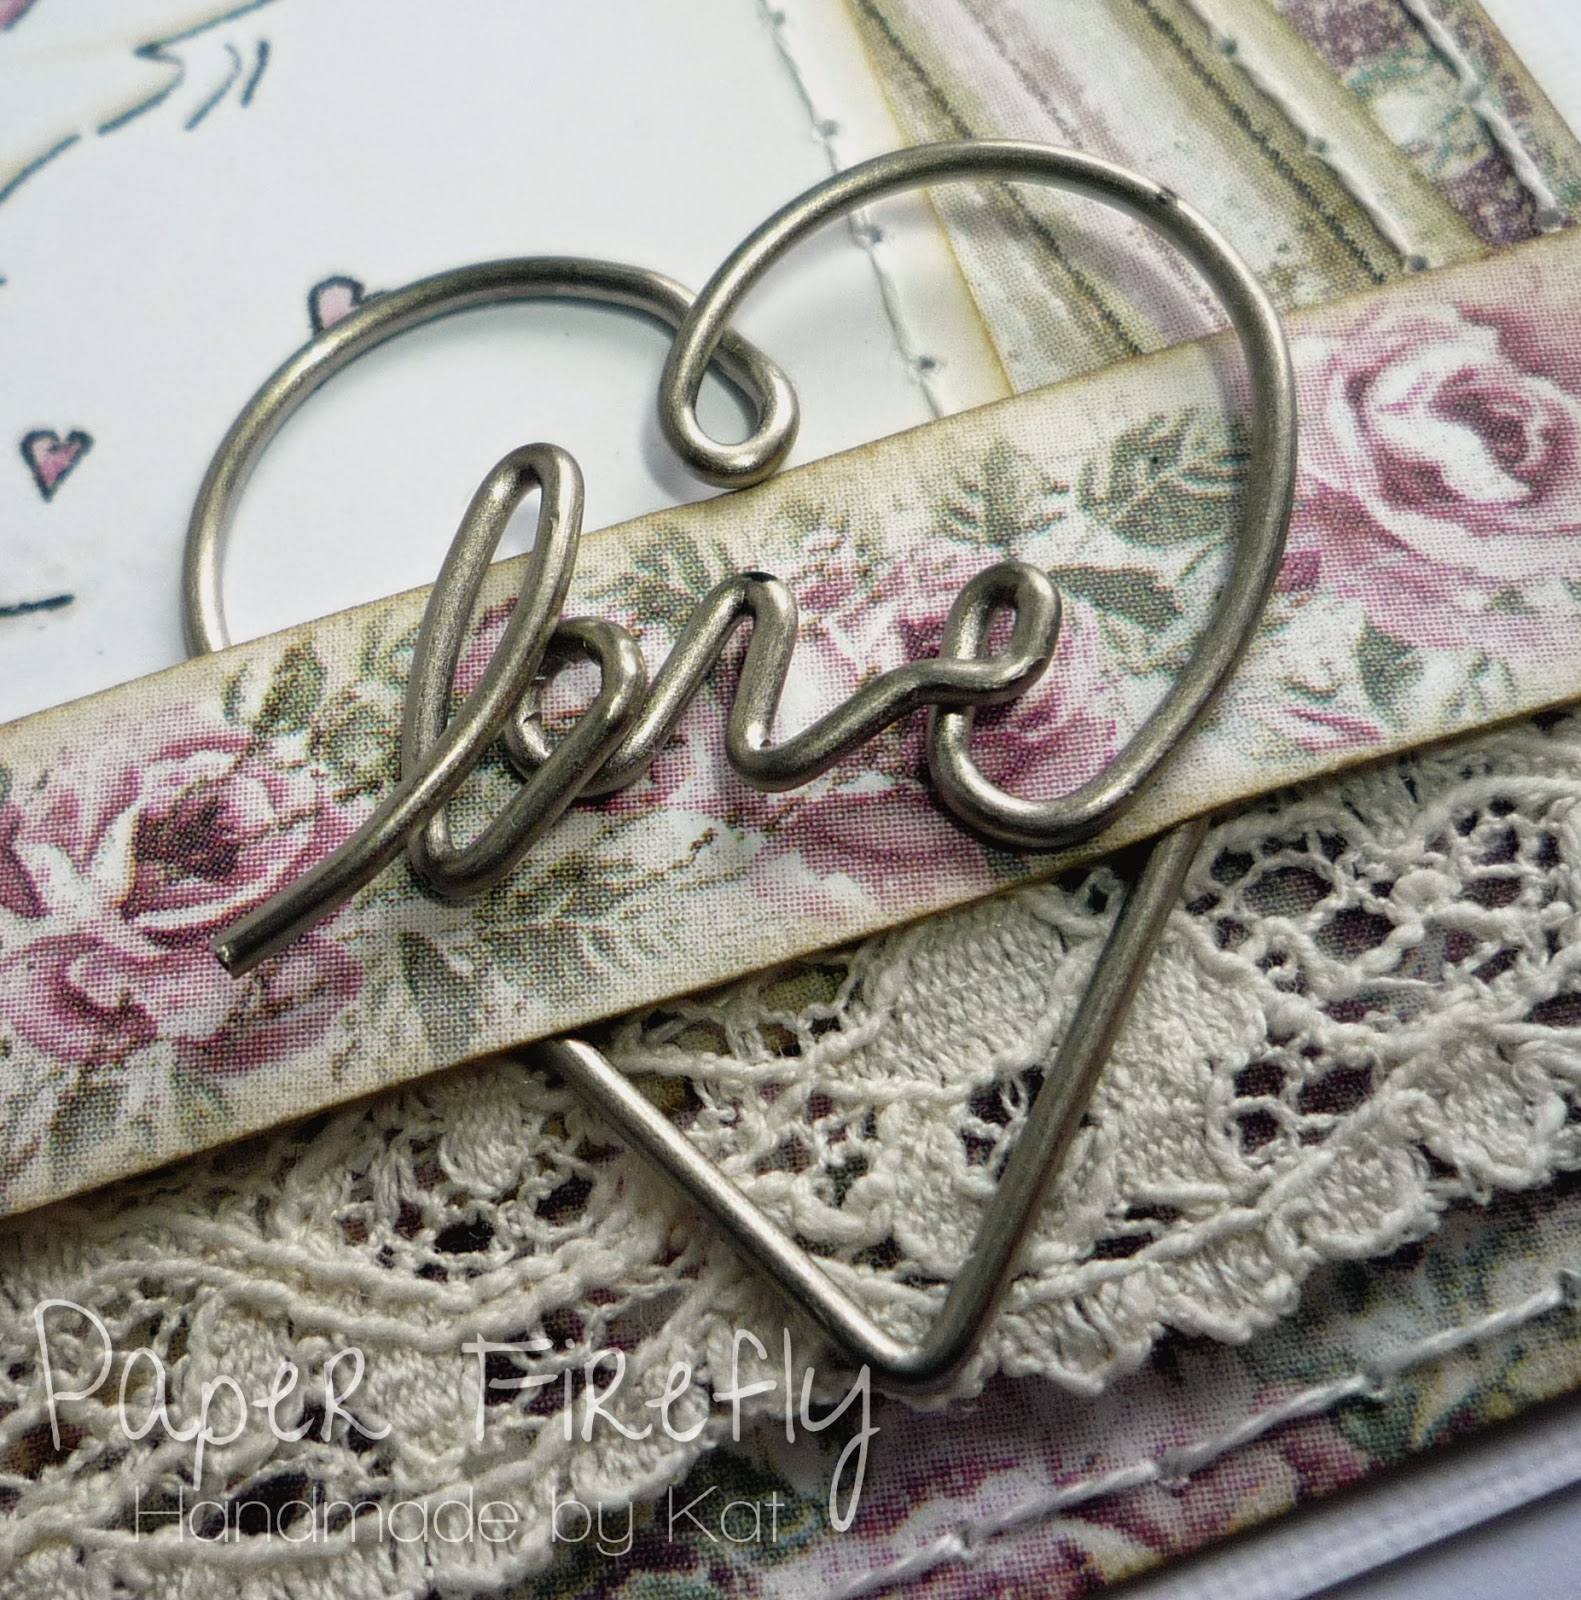 Metal heart embellishment from romantic vintage style wedding card with cute wedding couple